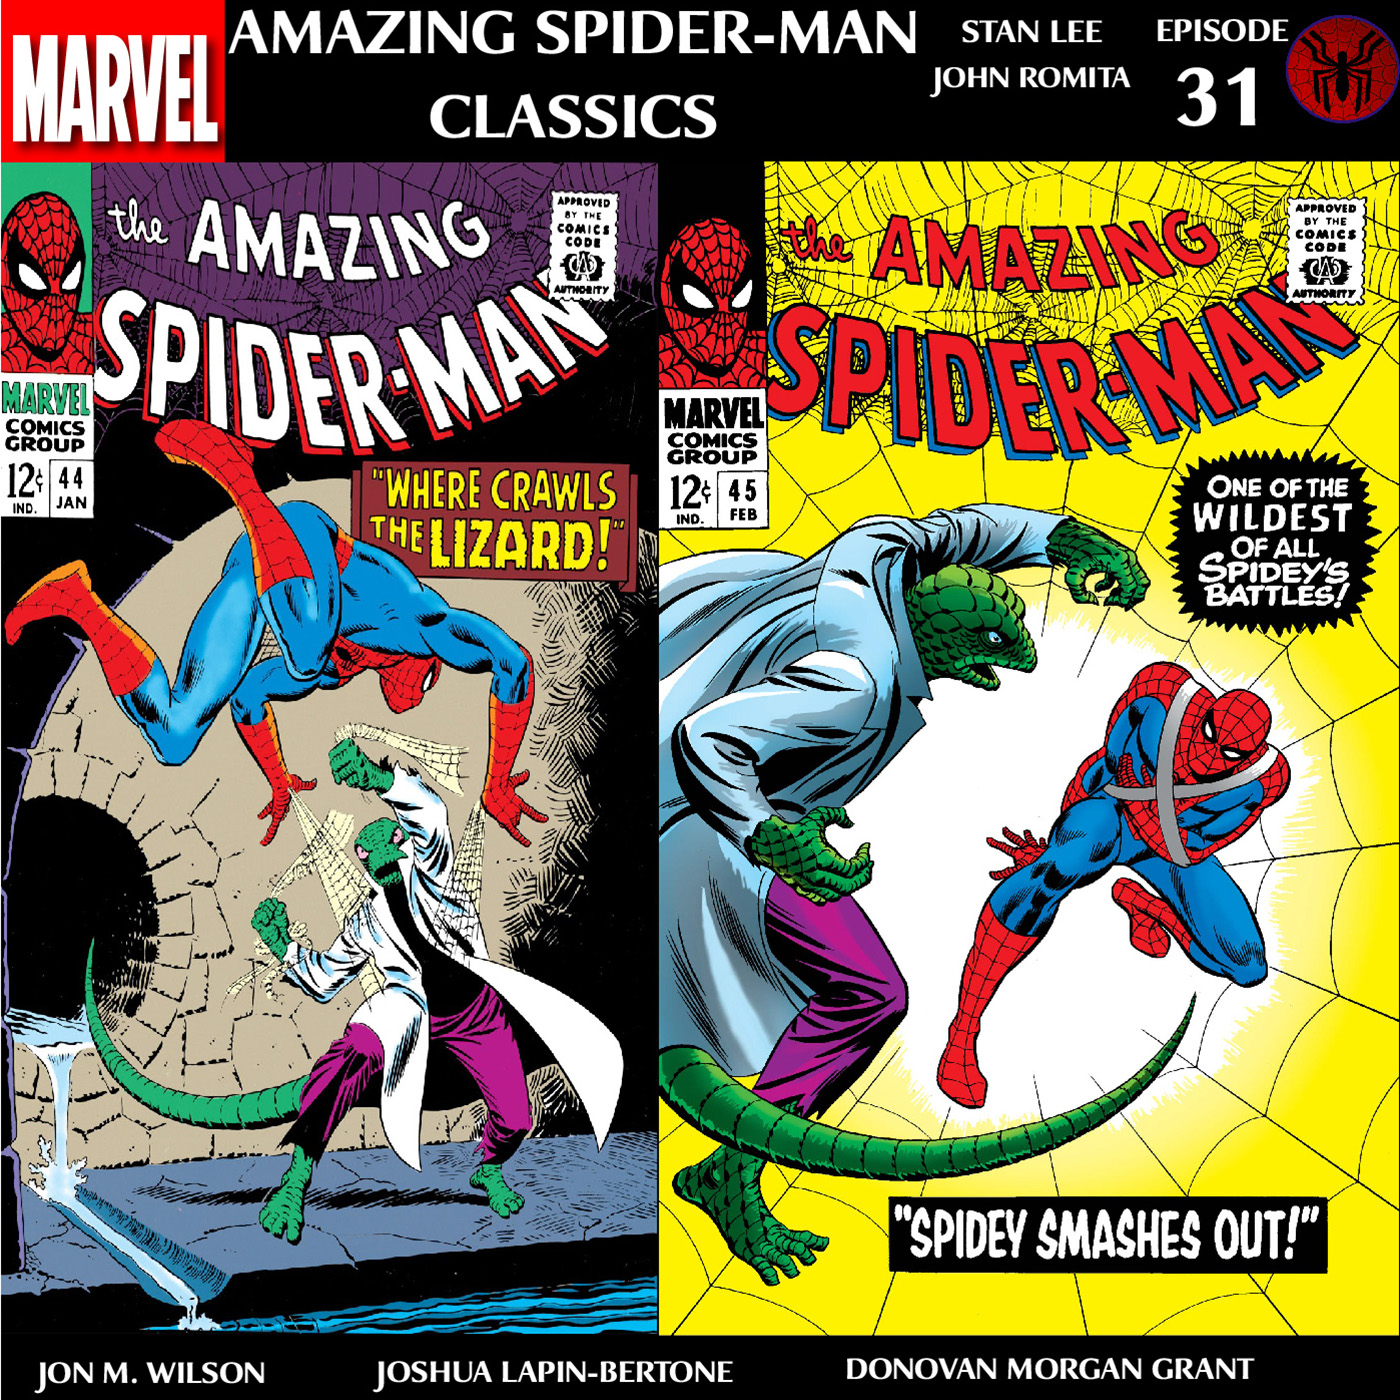 Amazing Spider-Man Classics Episode 31: ASM 44 & 45